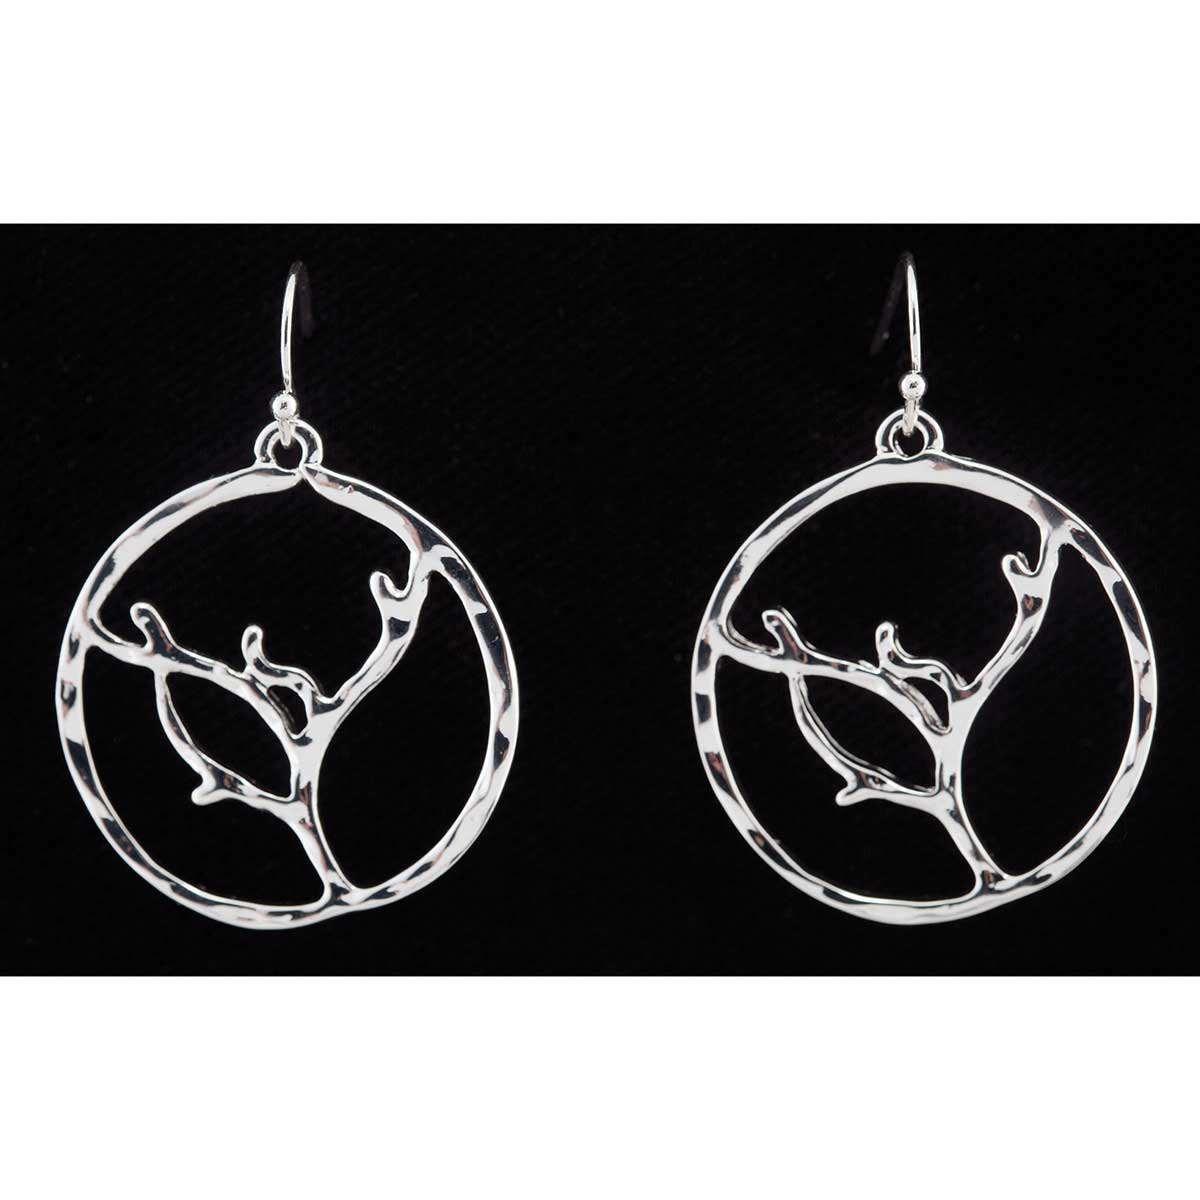 SI TWIG CIRCLE EARRINGS